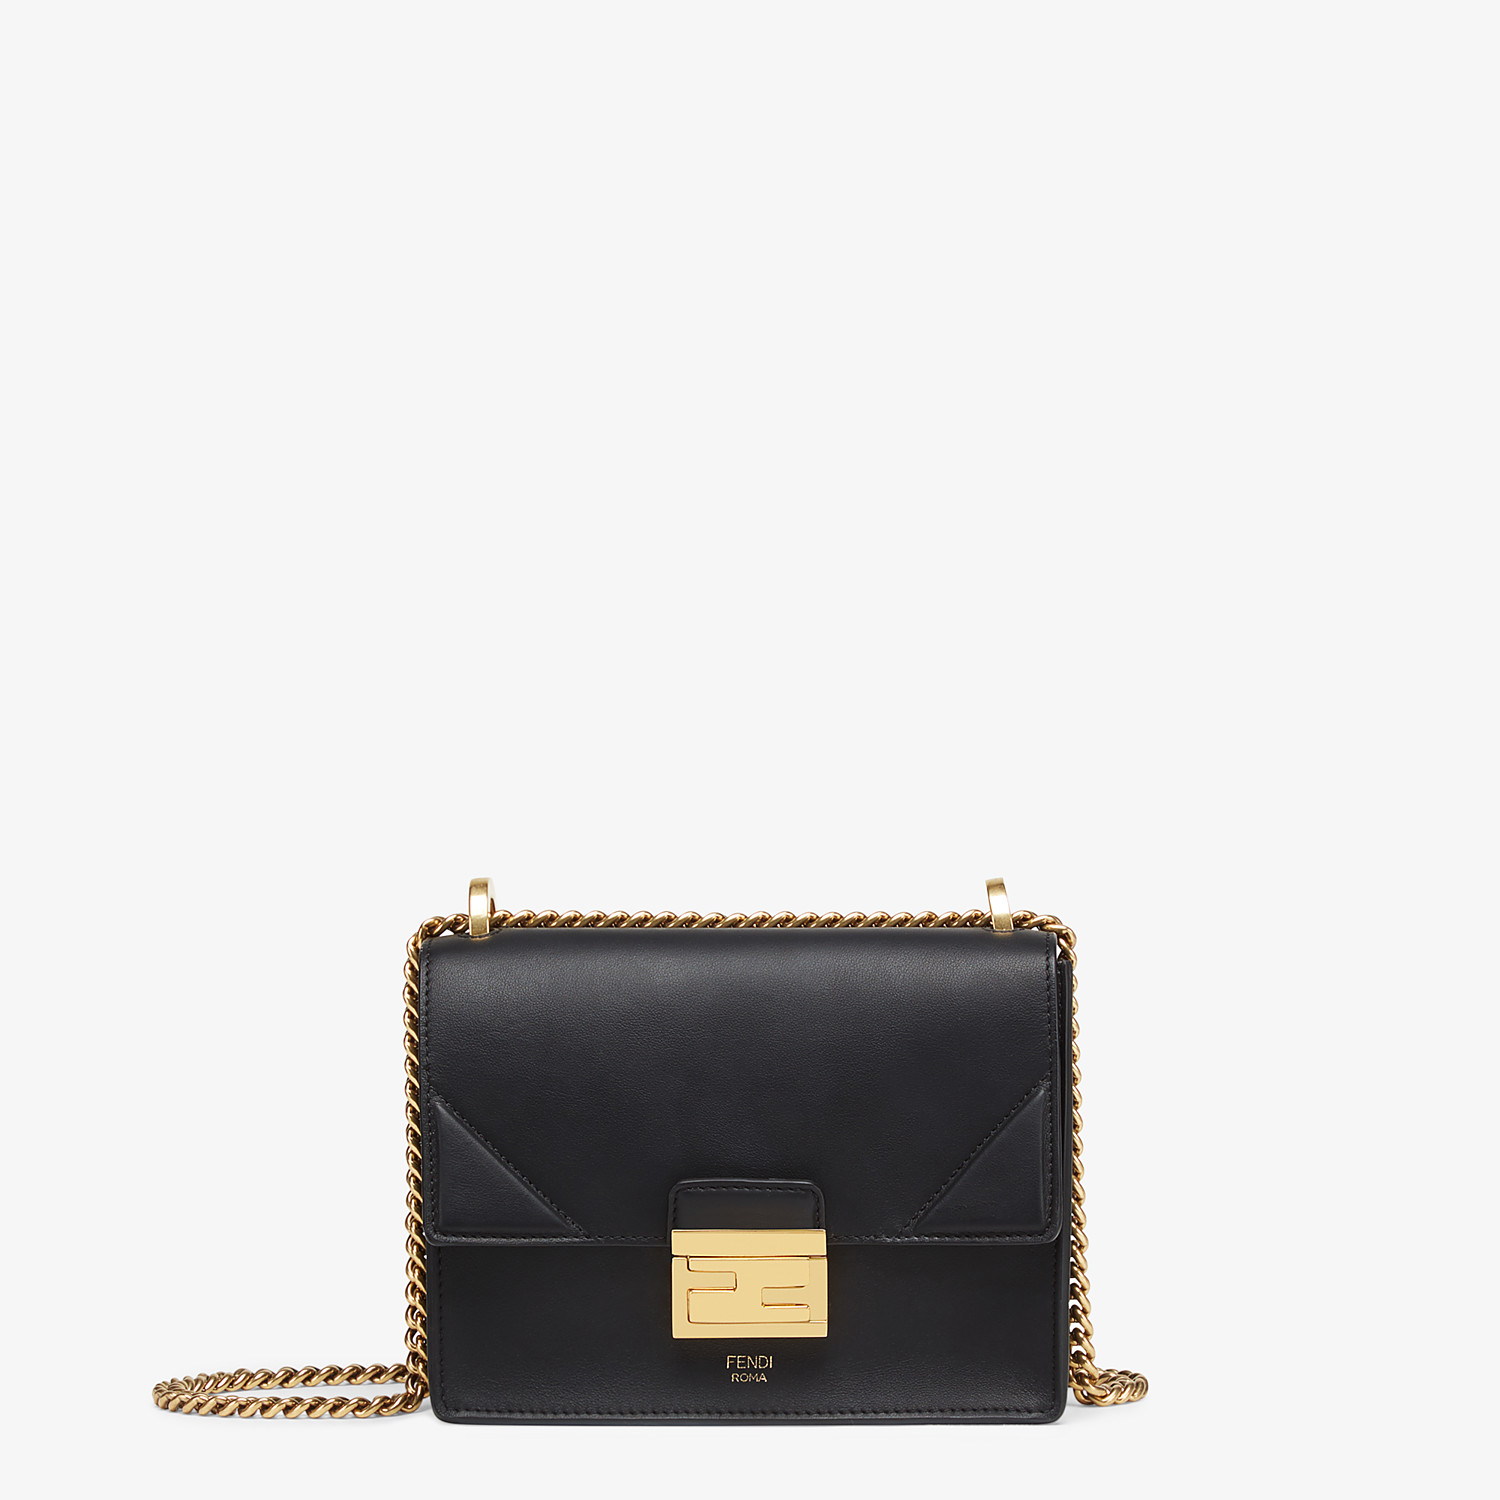 FENDI KAN U SMALL - Black leather mini-bag - view 1 detail